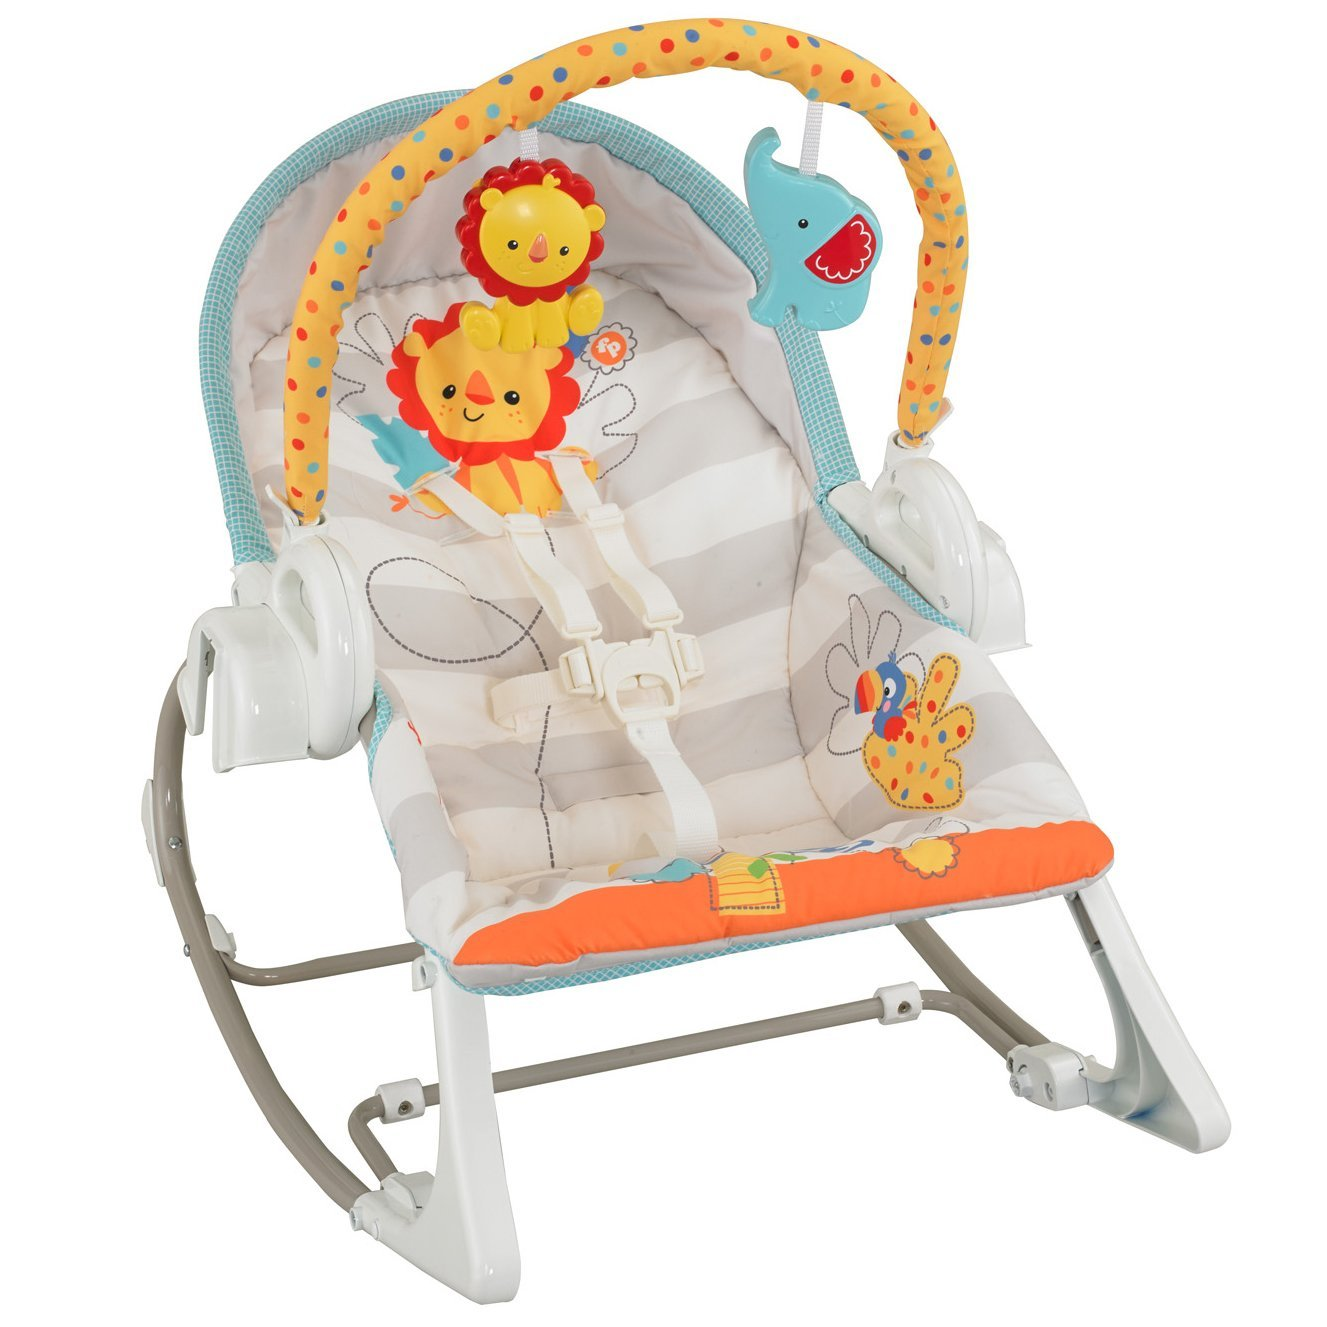 NEW Fisher Price 3in1 SwingnRocker Musical Baby Swing